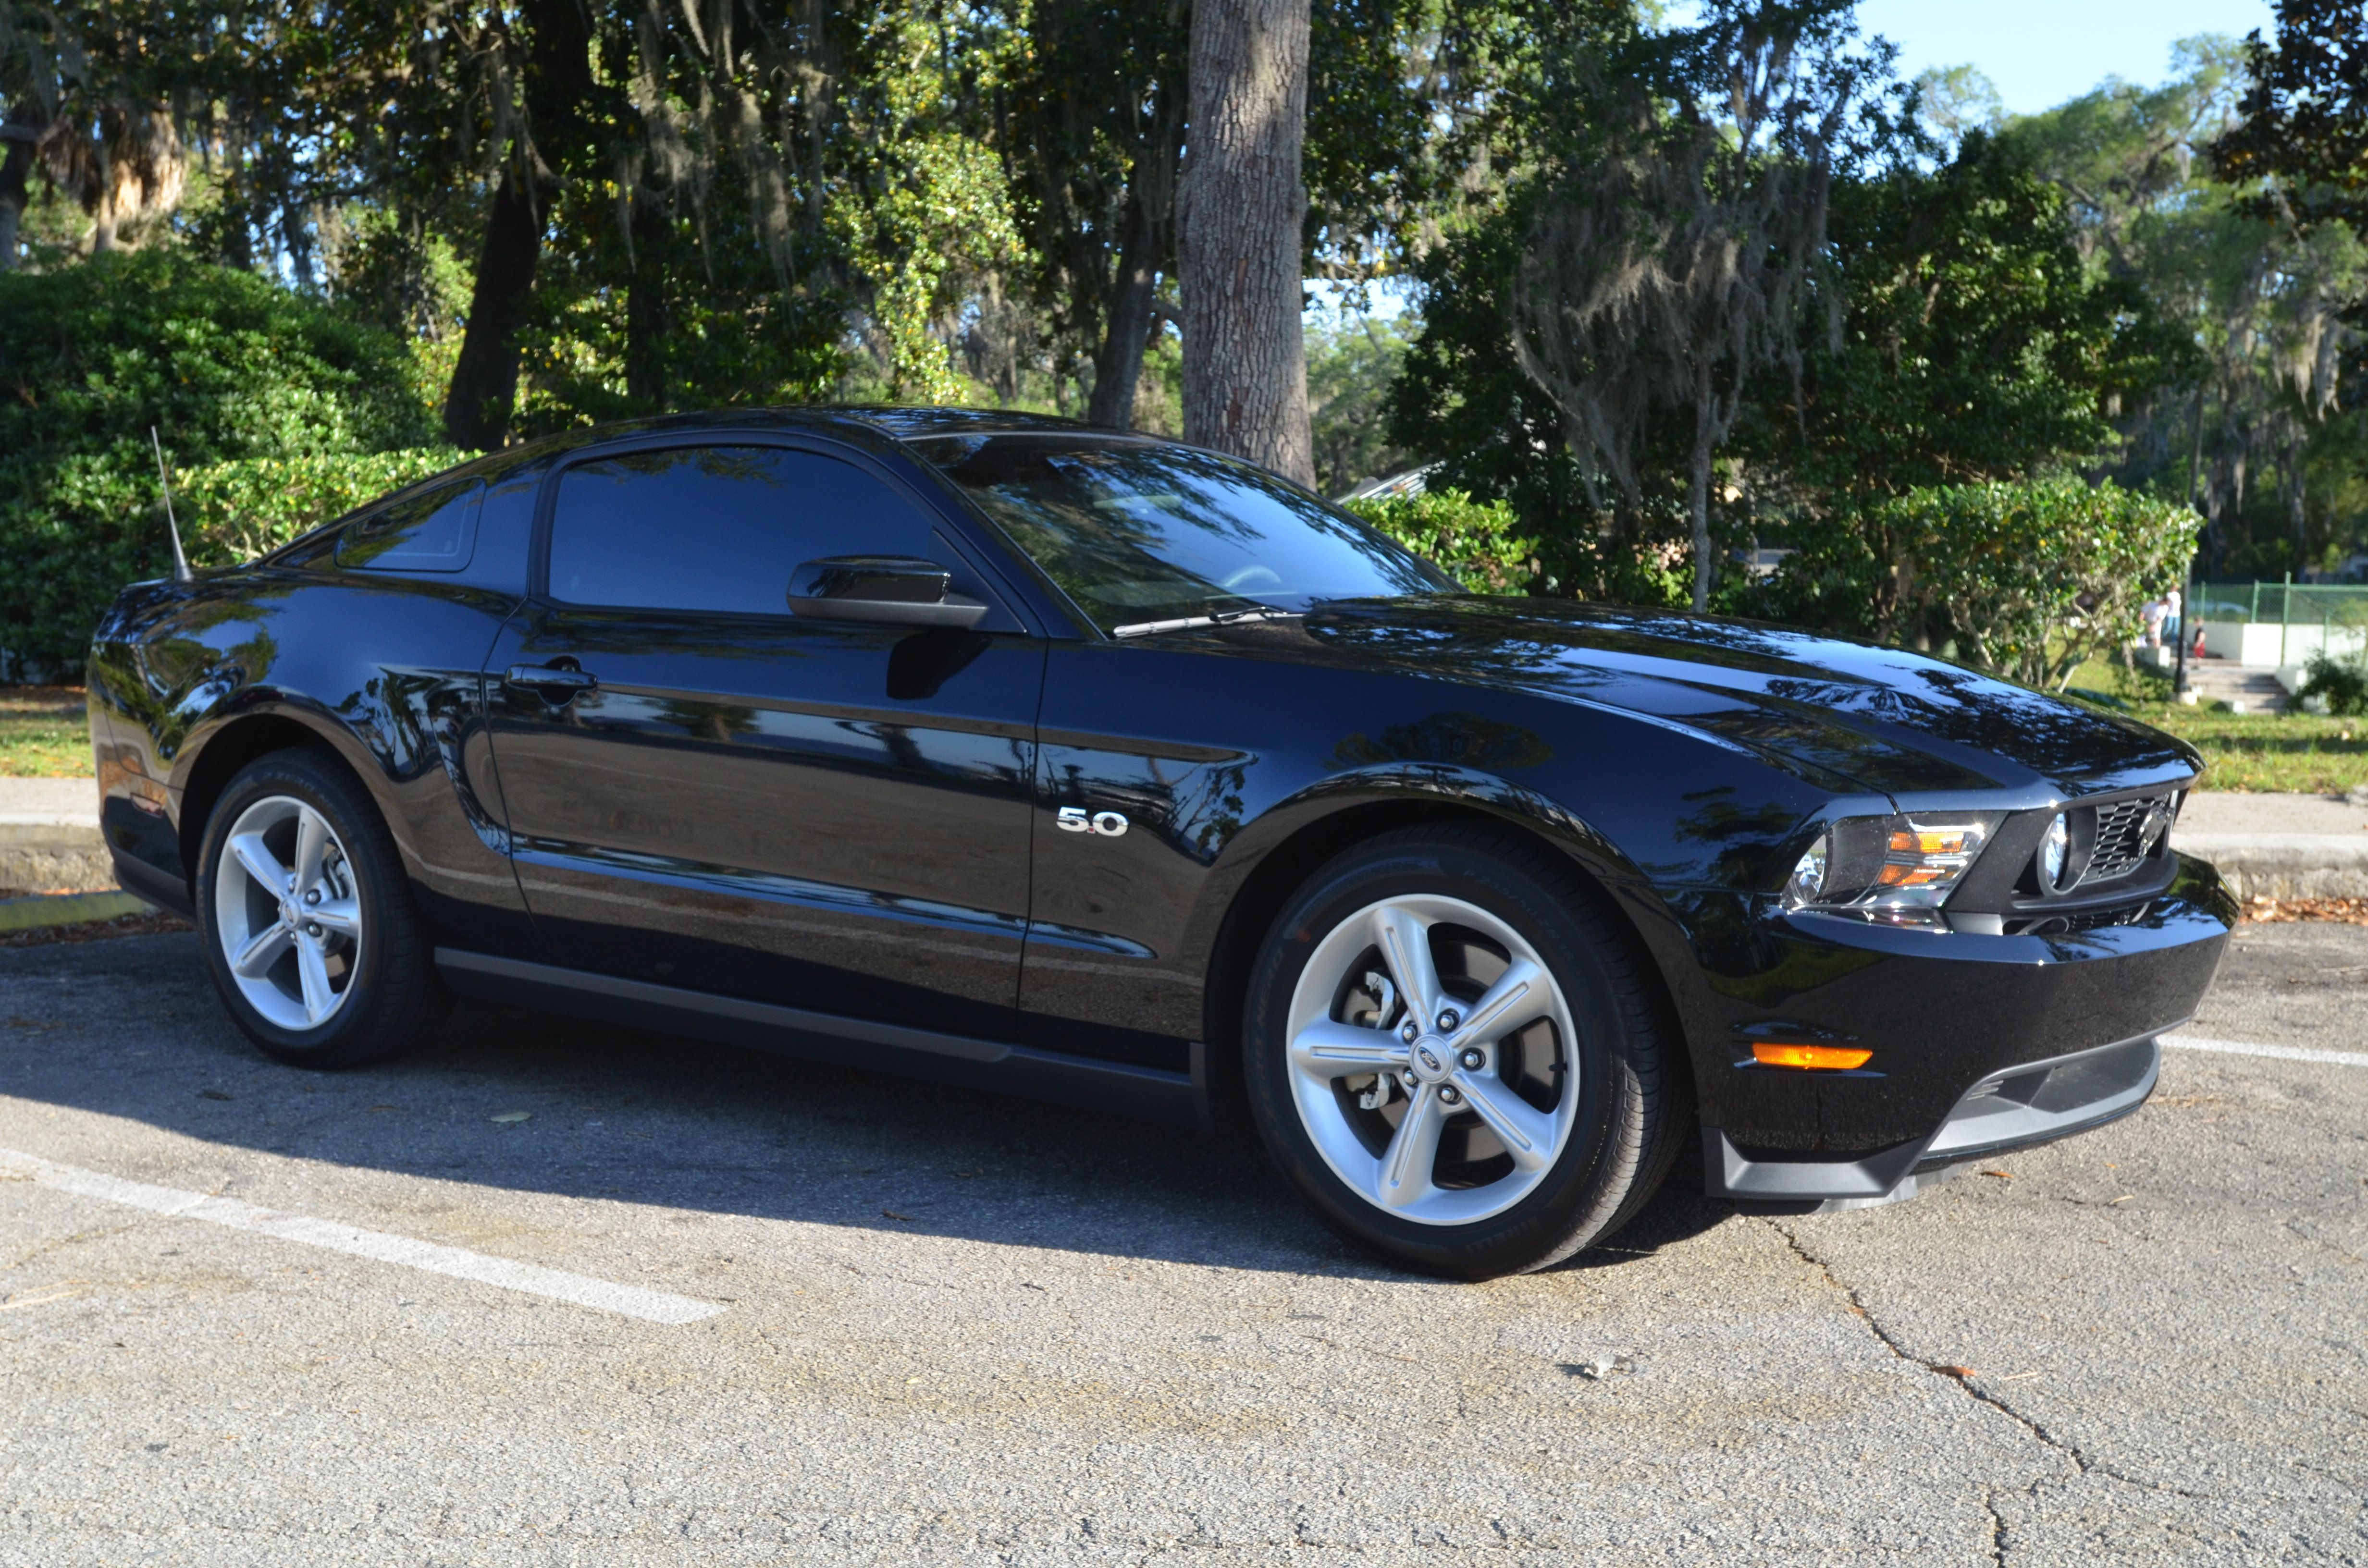 Ford Mustang GT 5 0 car used in the Great American Car War TV show